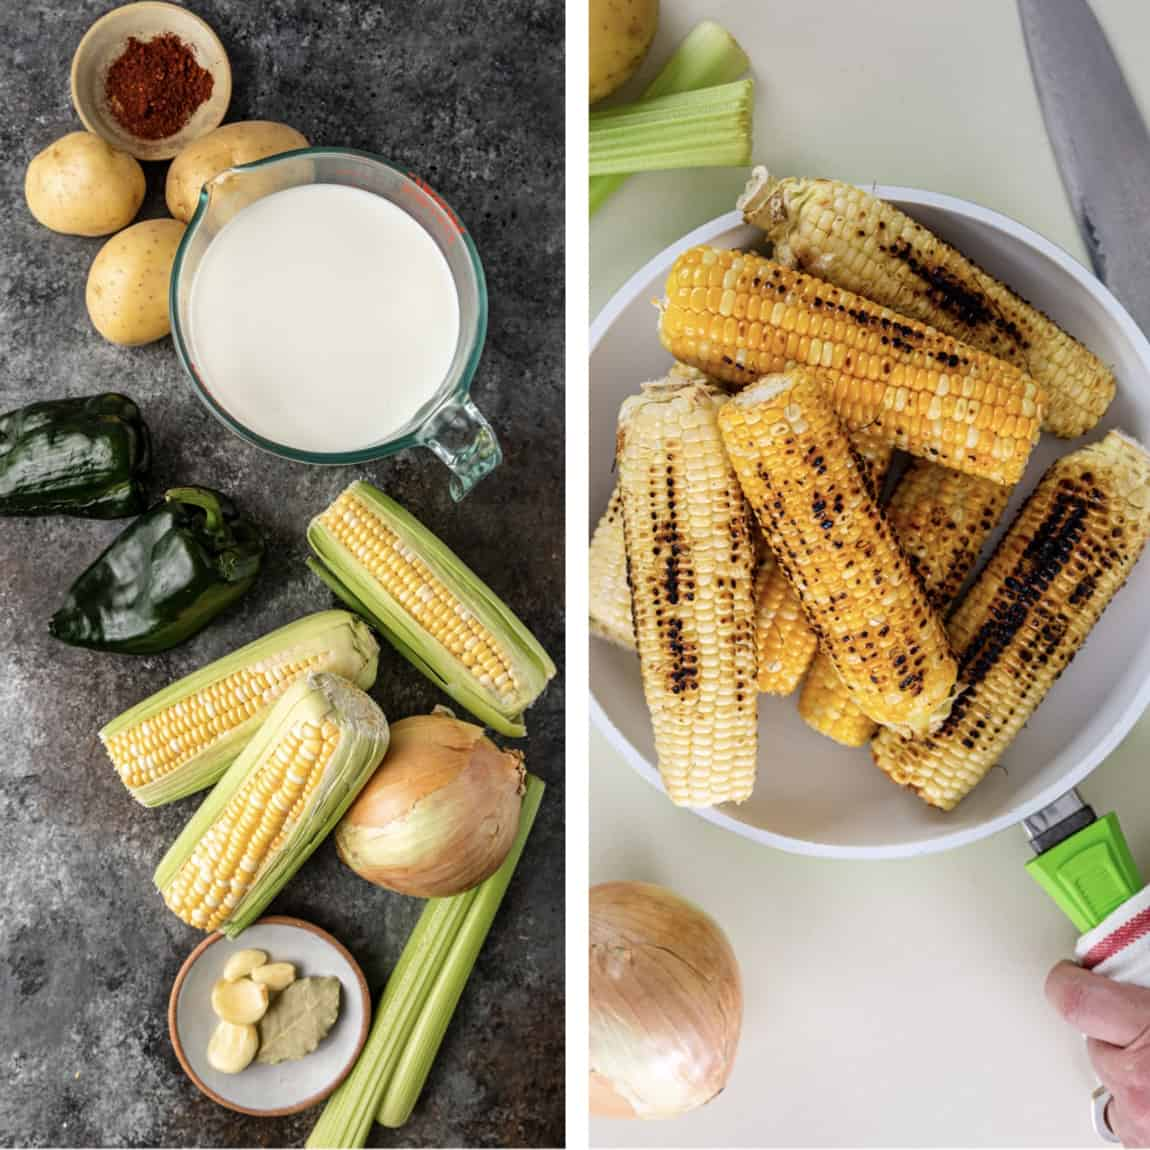 side by side photos of corn chowder ingredients and a skillet of charred corn on the cob